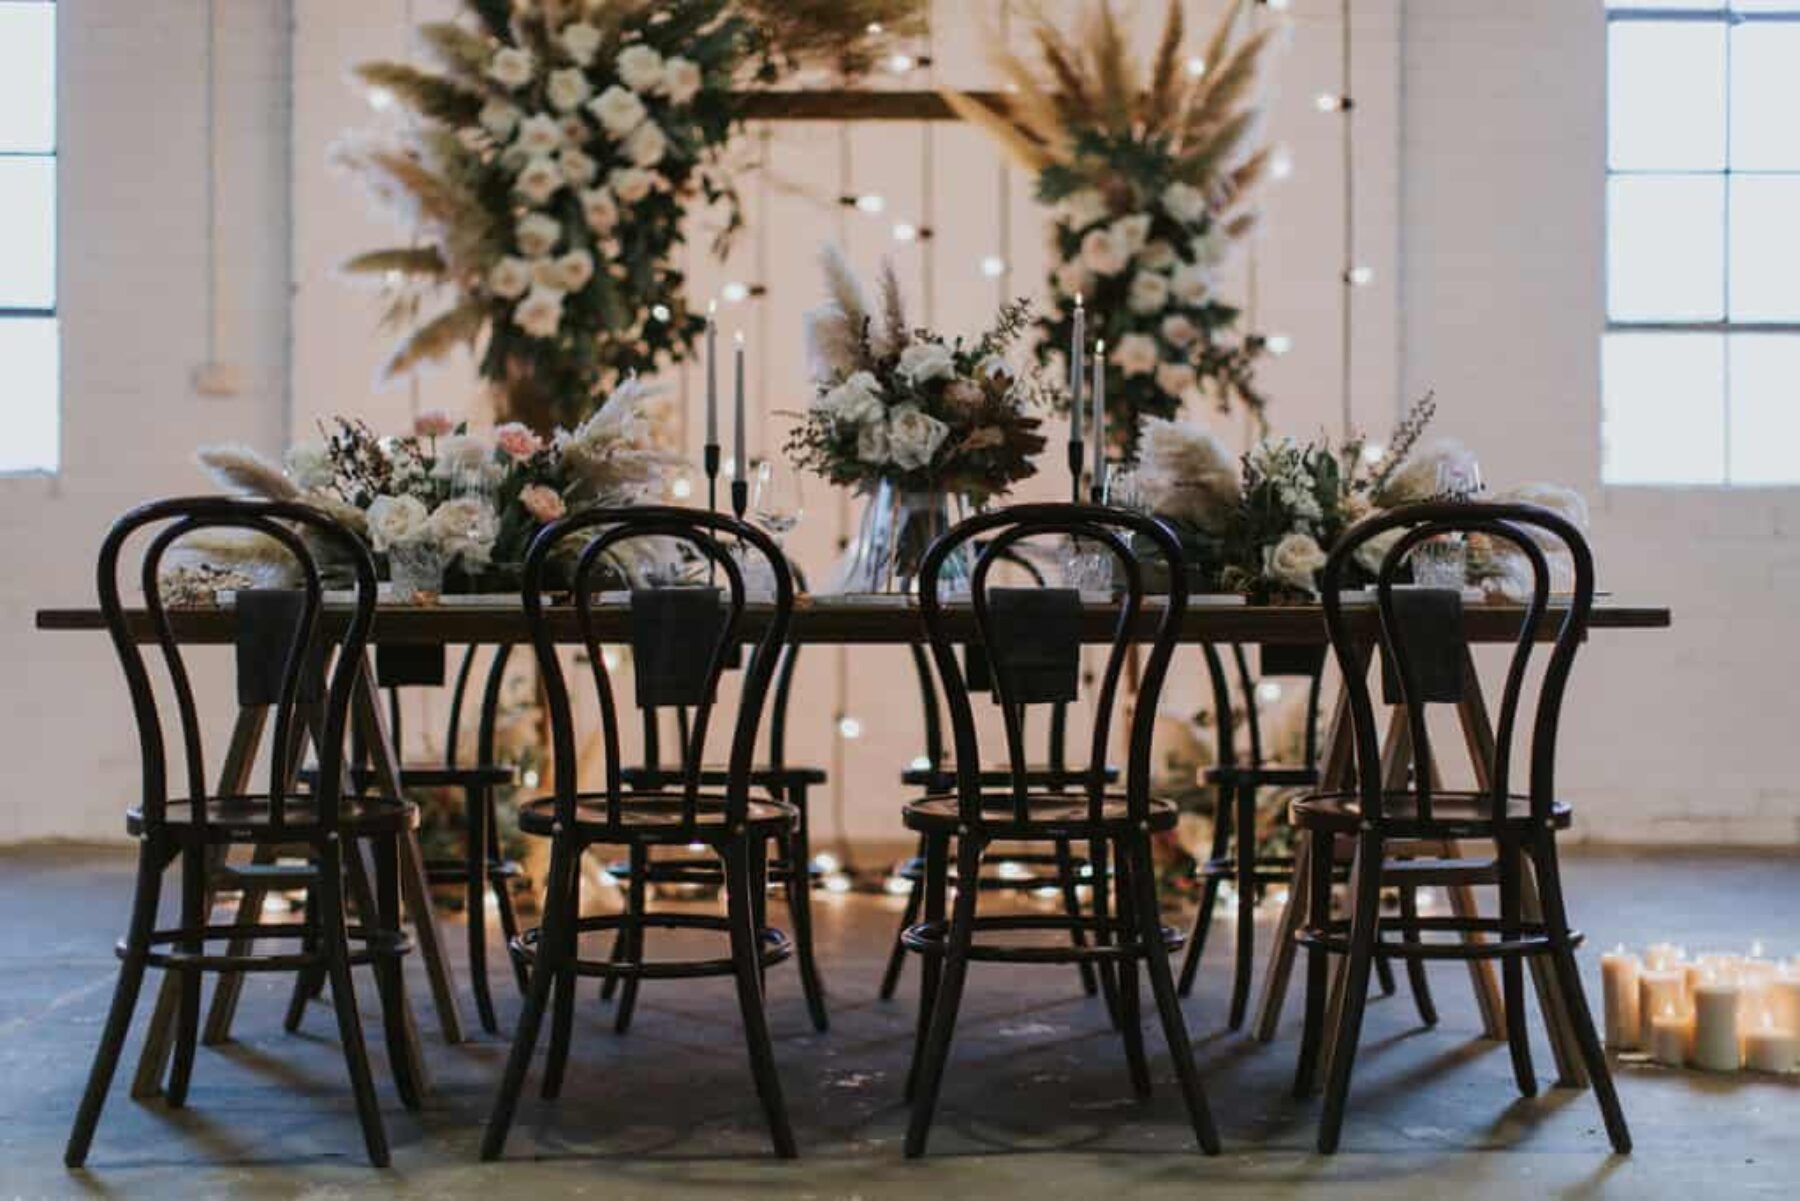 industrial-luxe wedding inspiration at Stackwood in Fremantle